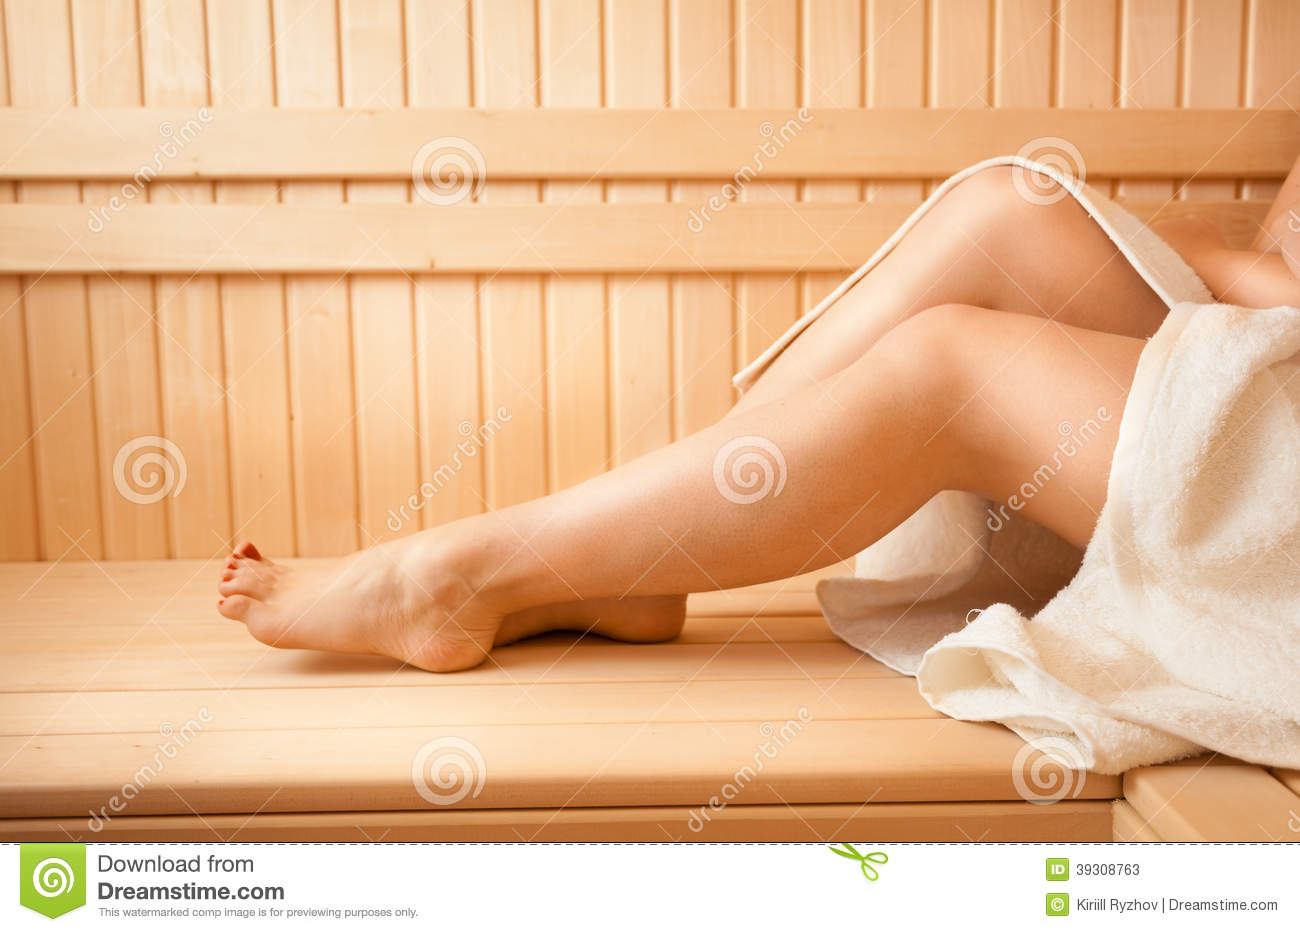 Photo Of Women Feet On Bench At Sauna